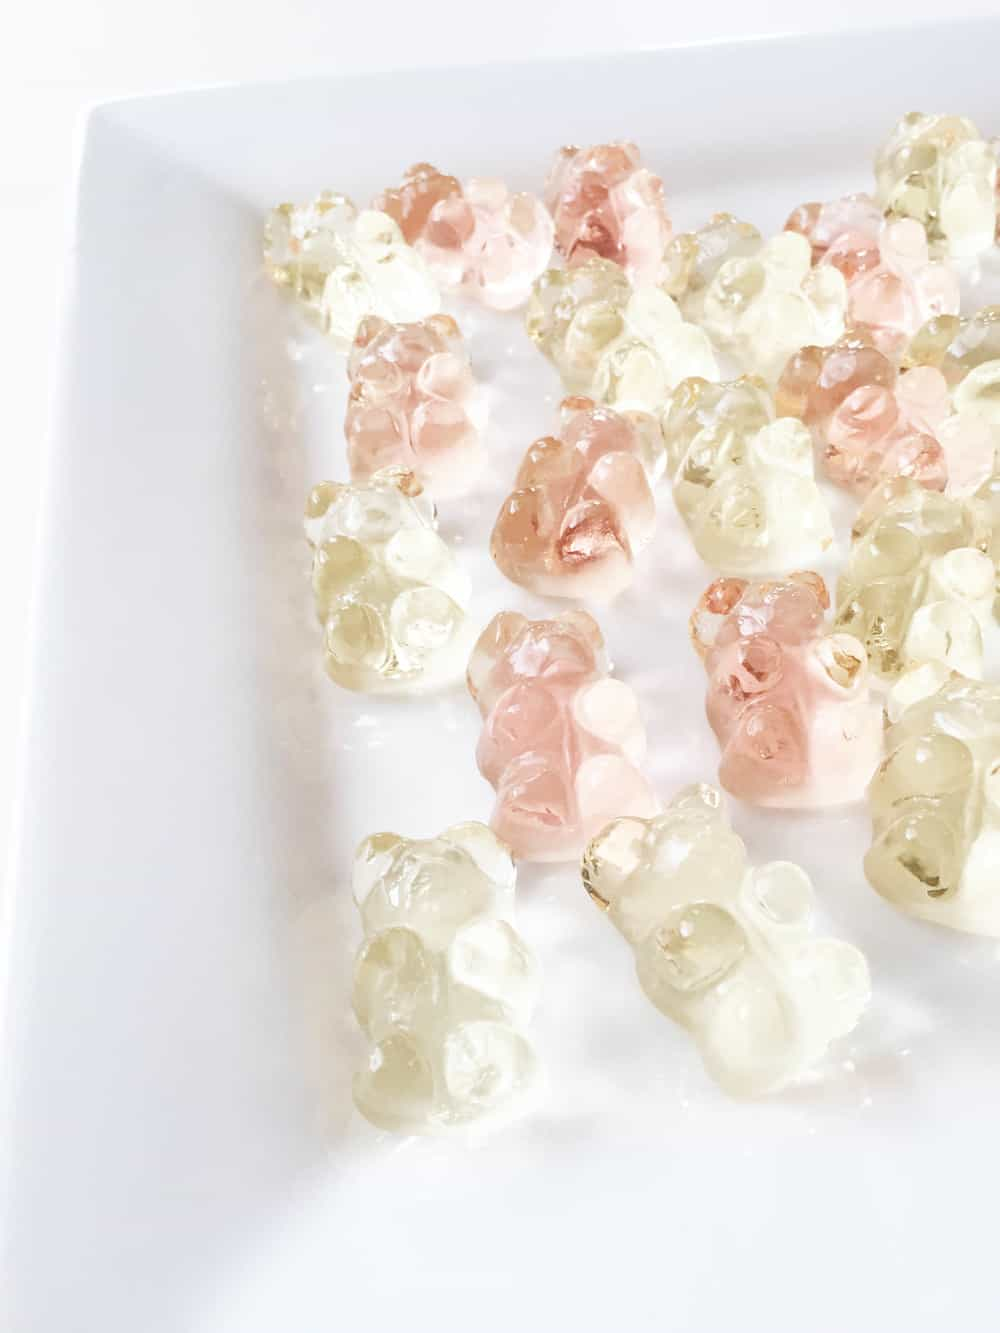 Champagne gummy bear recipe